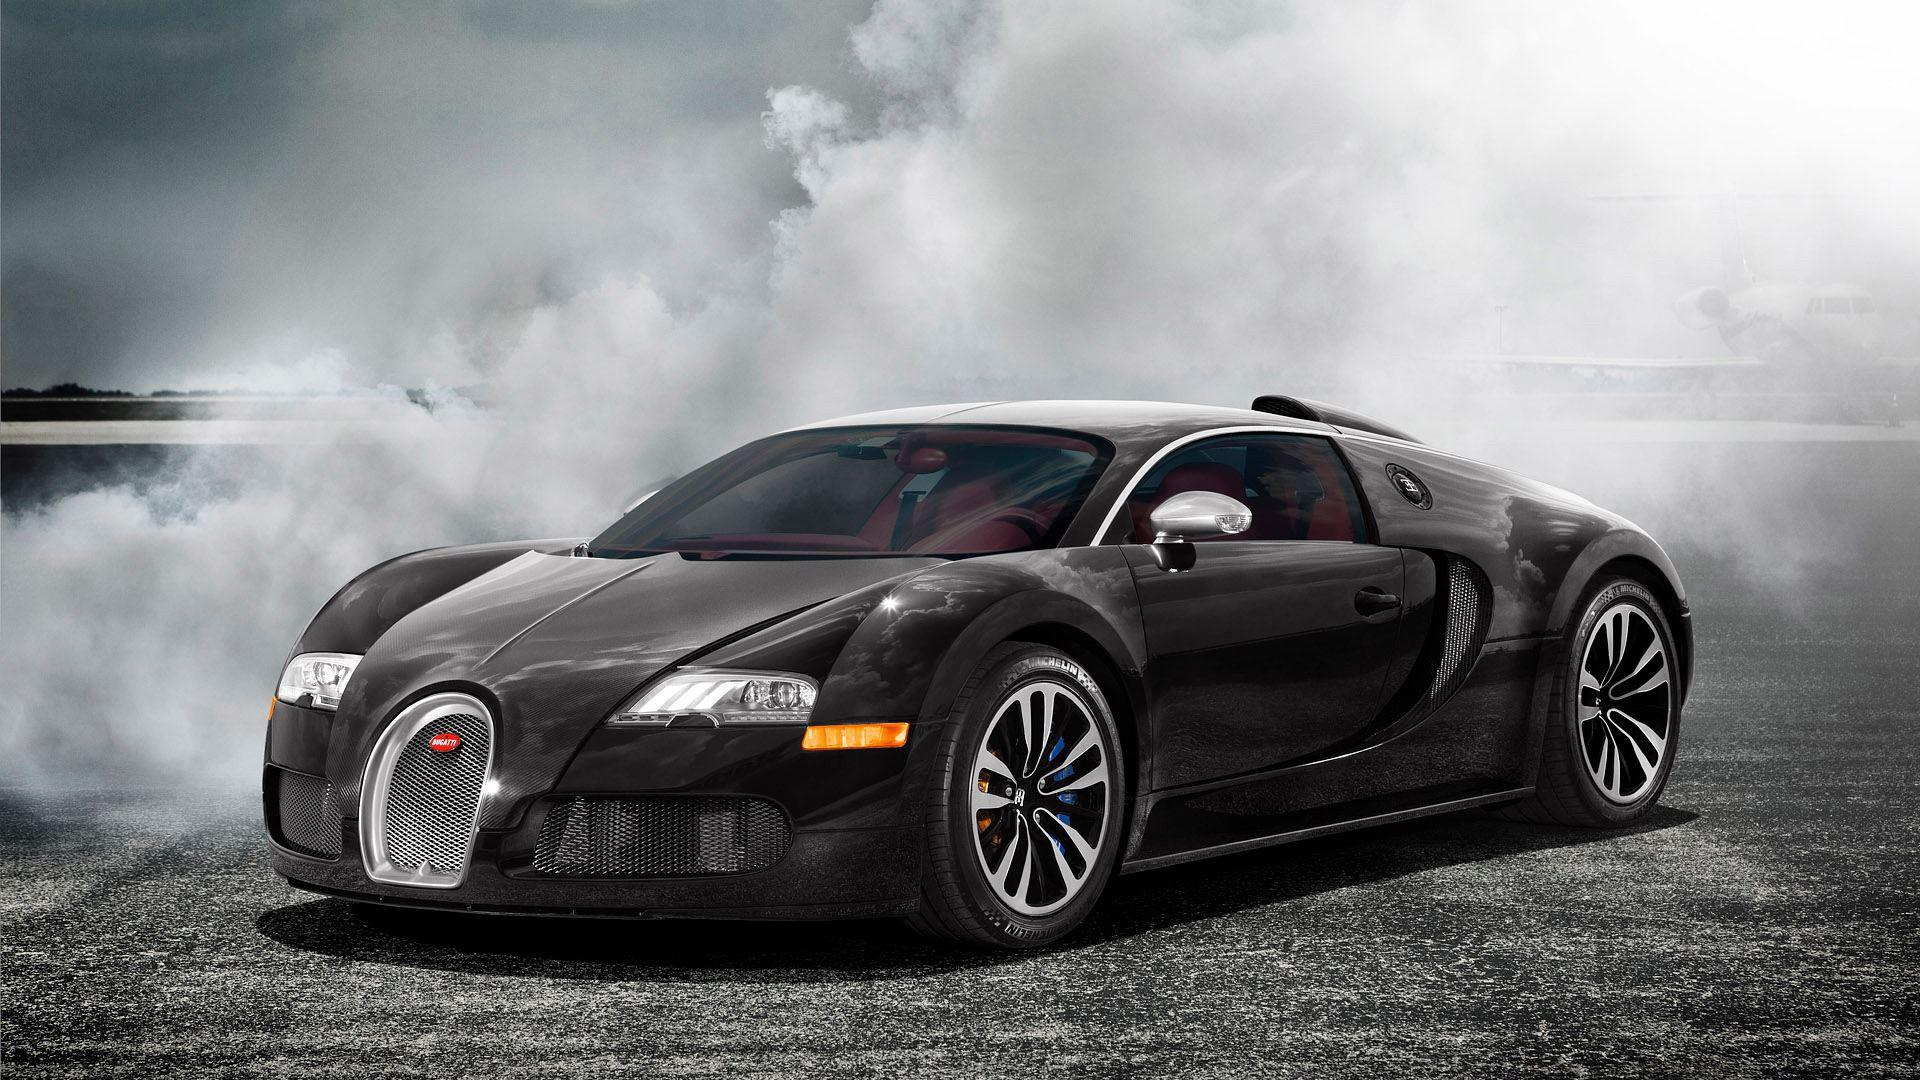 Veyron 2013 Sports Cars HD Wallpaper Bugatti Veyron 2013 Sports Cars 1920x1080